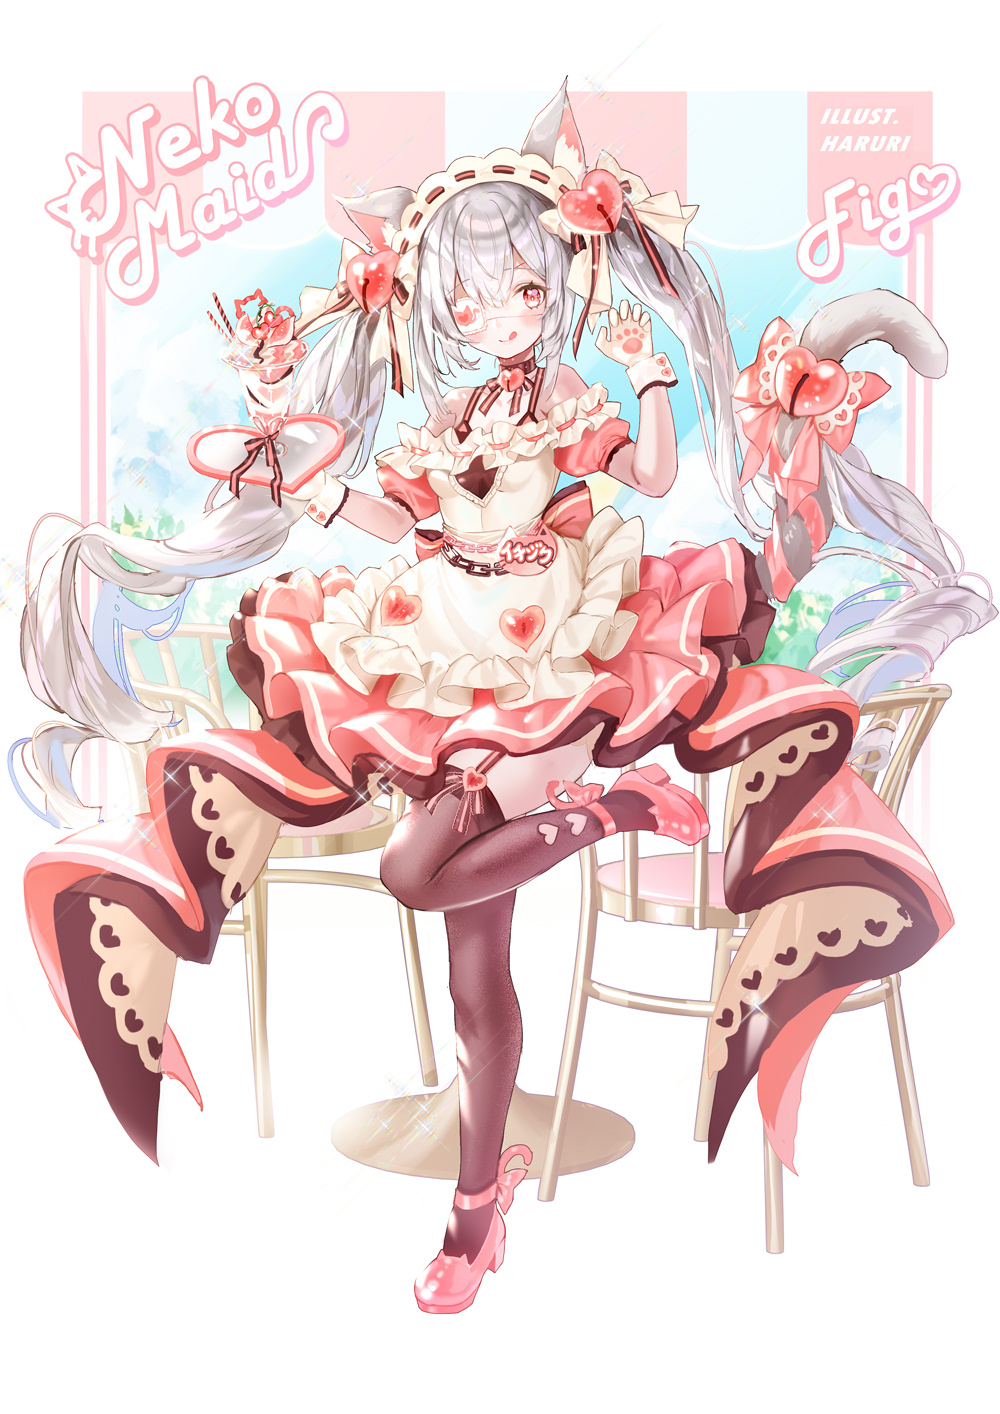 1girl :q animal_ear_fluff animal_ears apron artist_name bangs bare_shoulders blush bow brown_legwear cat_ears cat_girl cat_tail chair closed_mouth commentary_request eyebrows_visible_through_hair eyepatch frilled_apron frills full_body gloves hair_between_eyes hair_bow hair_ornament hands_up haruri heart heart_hair_ornament high_heels highres holding holding_tray long_hair looking_at_viewer maid medical_eyepatch original parfait pink_footwear pink_skirt pleated_skirt puffy_short_sleeves puffy_sleeves red_eyes ringlets shirt shoes short_sleeves silver_hair skirt sleeveless sleeveless_shirt smile solo standing standing_on_one_leg table tail thigh-highs tongue tongue_out tray twintails very_long_hair waist_apron white_apron white_bow white_gloves white_shirt